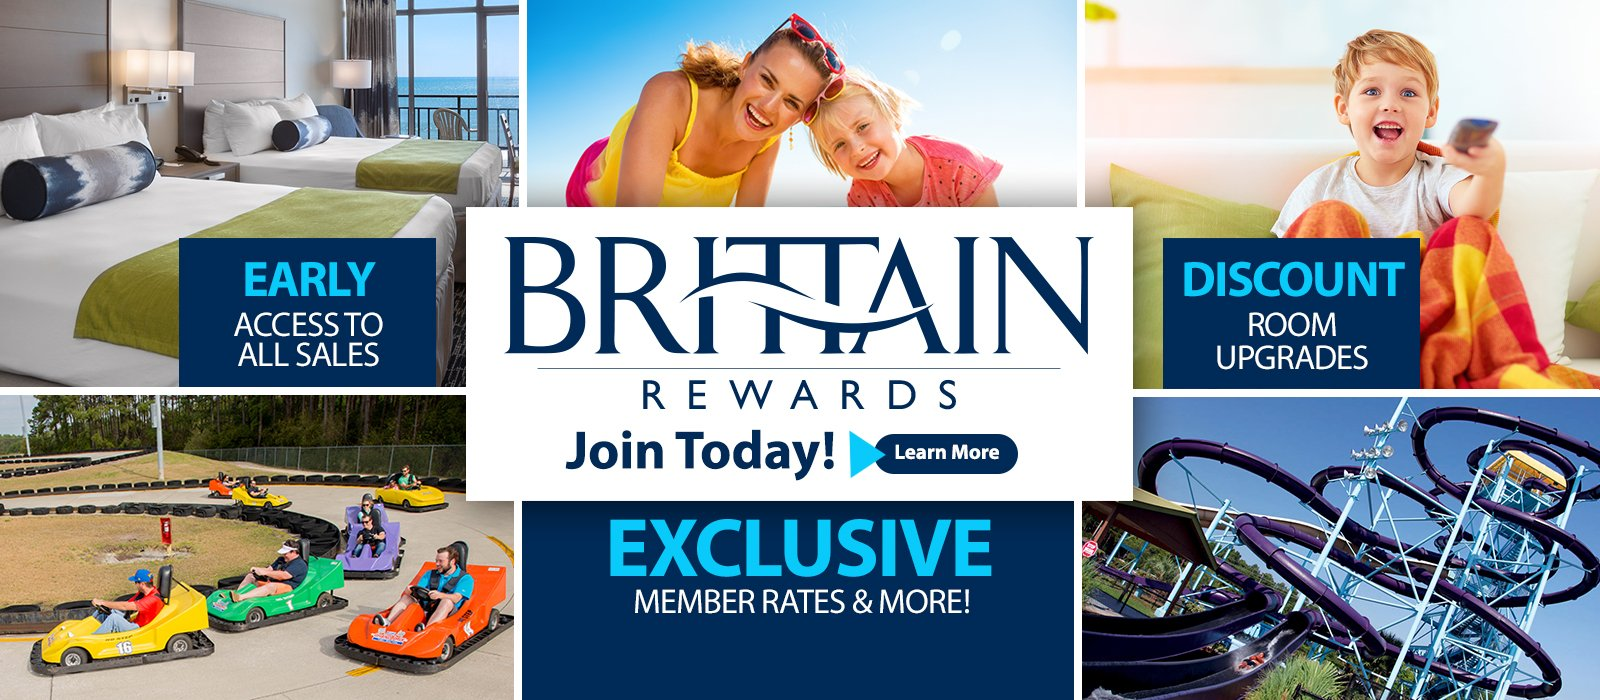 Brittain Rewards Promo Image